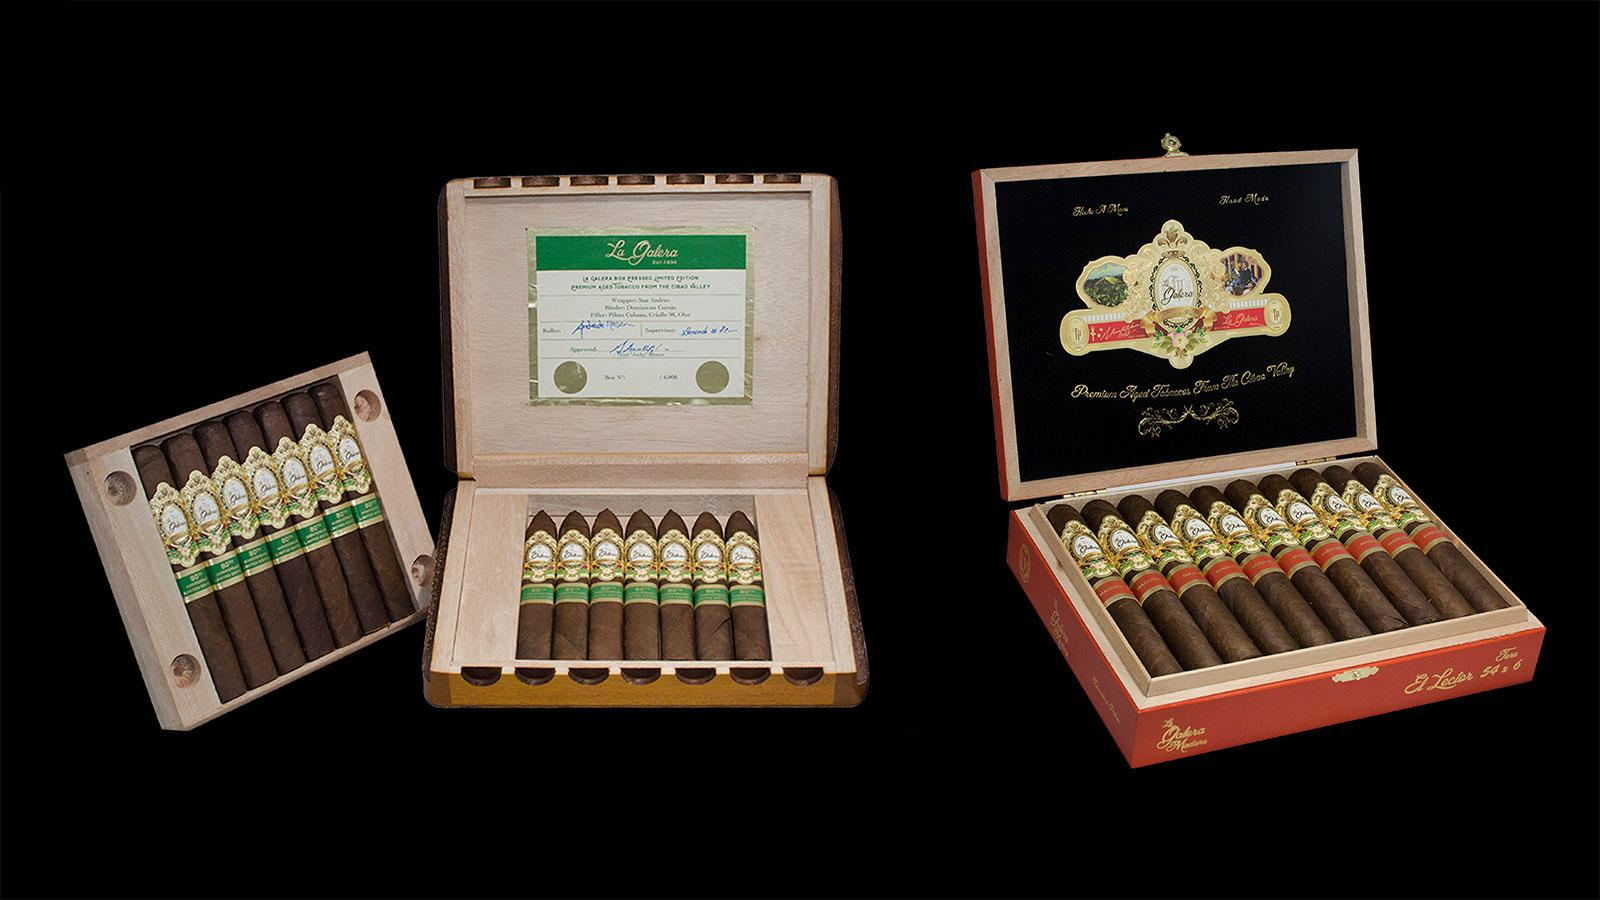 A Trio of New La Galera Cigars